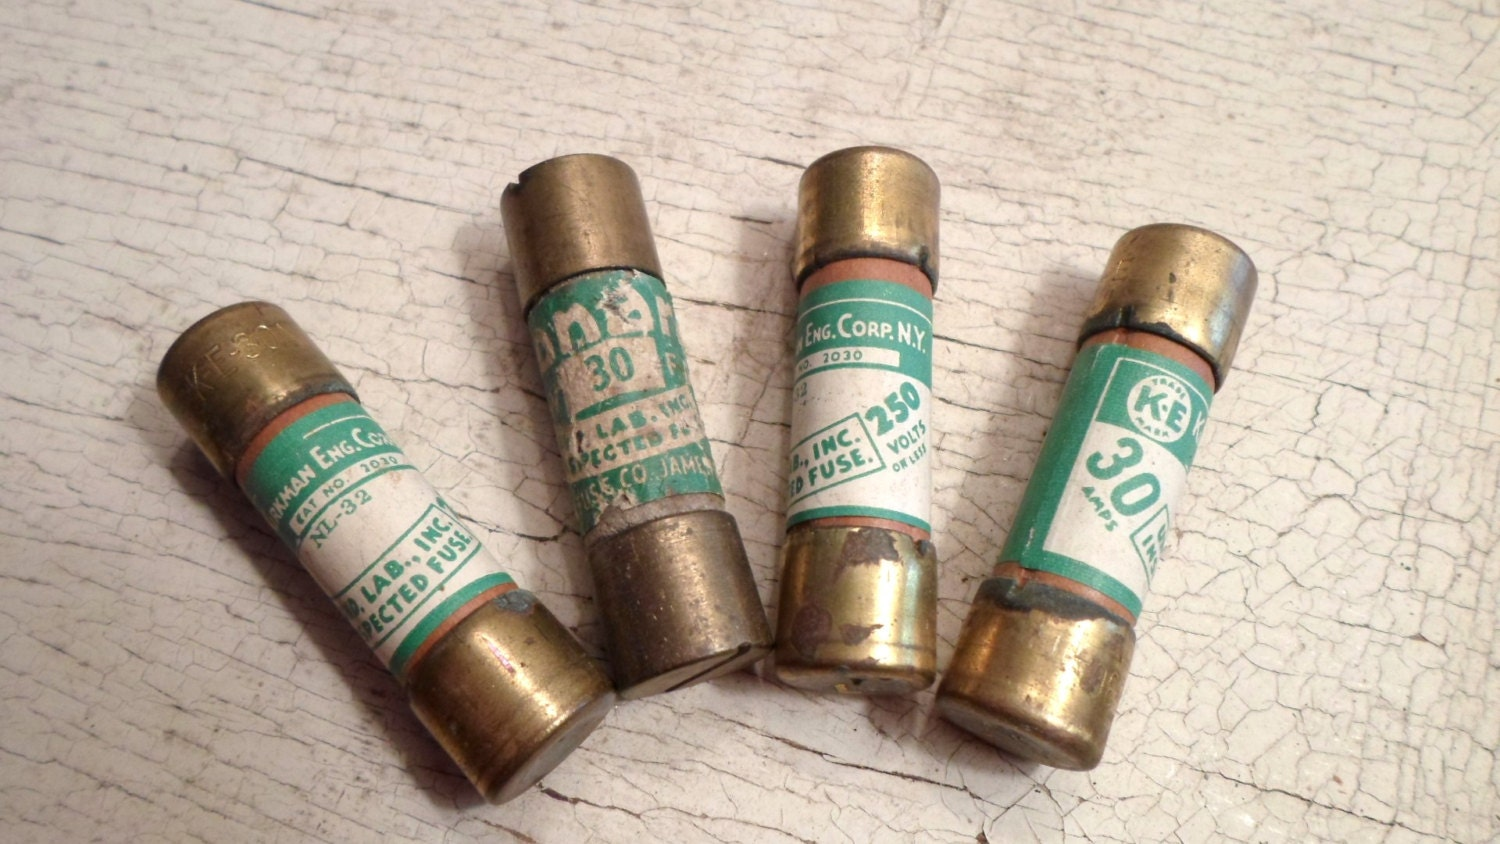 vintage fuse vintage fuses 4 pcs brass caps labels industrial repurpose 1940s electrical box fuse box altered art supplies all vintage man